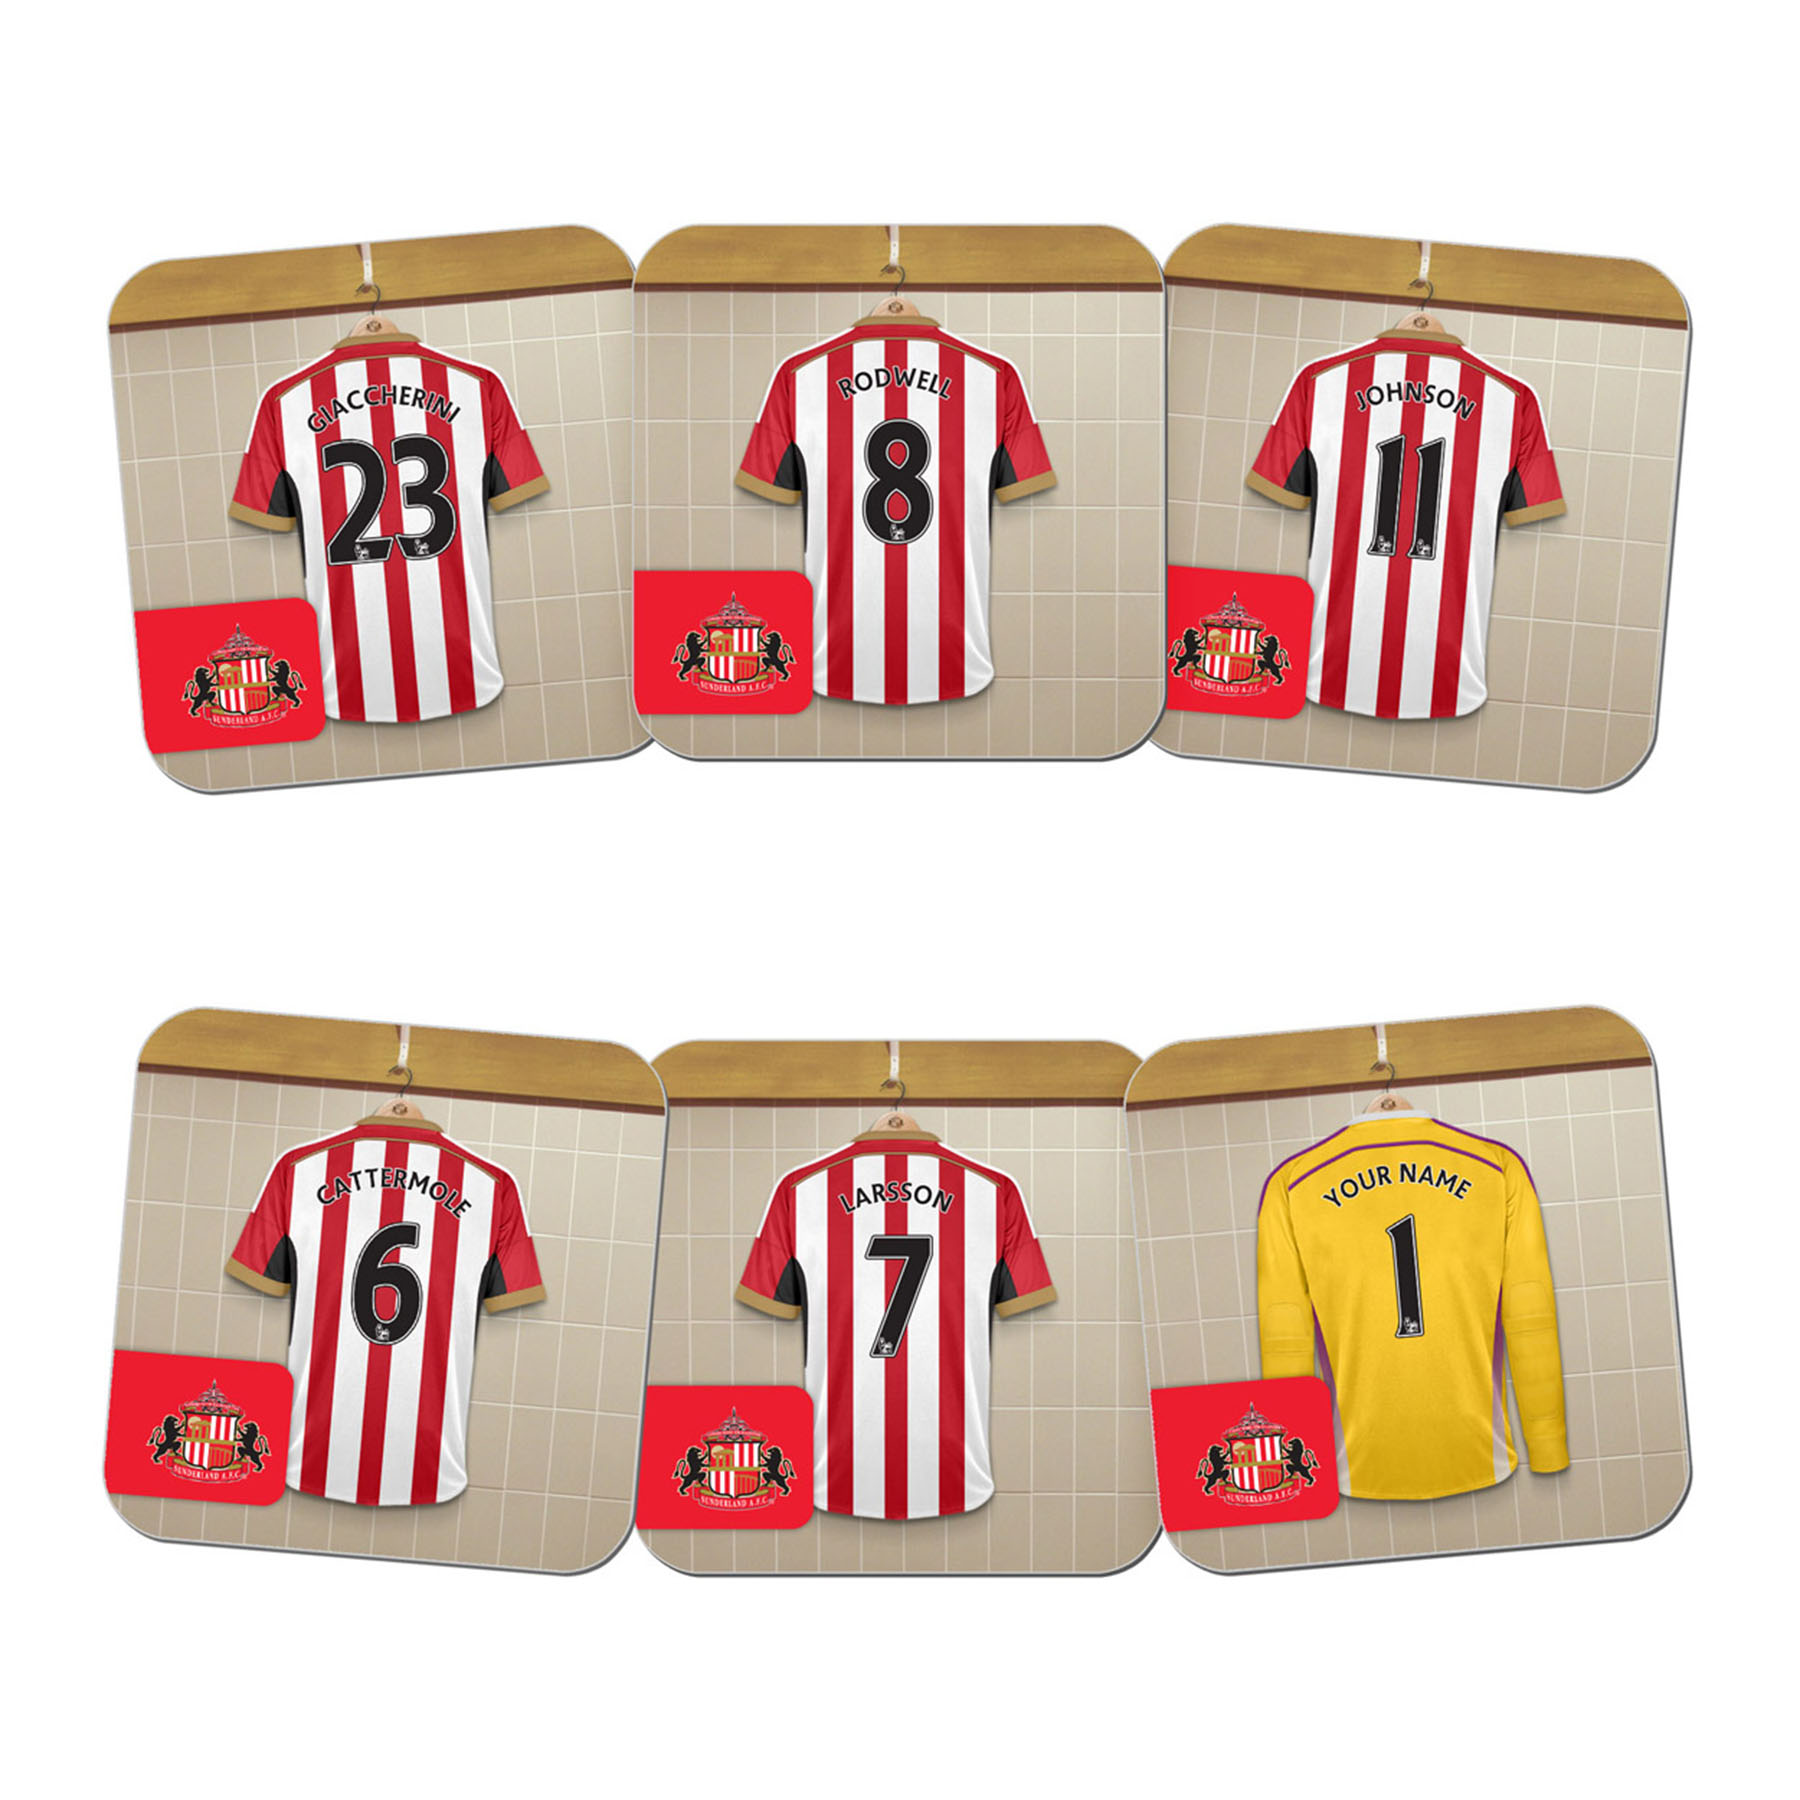 Sunderland Personalised Goal Keeper Dressing Room Coasters 6 Pack